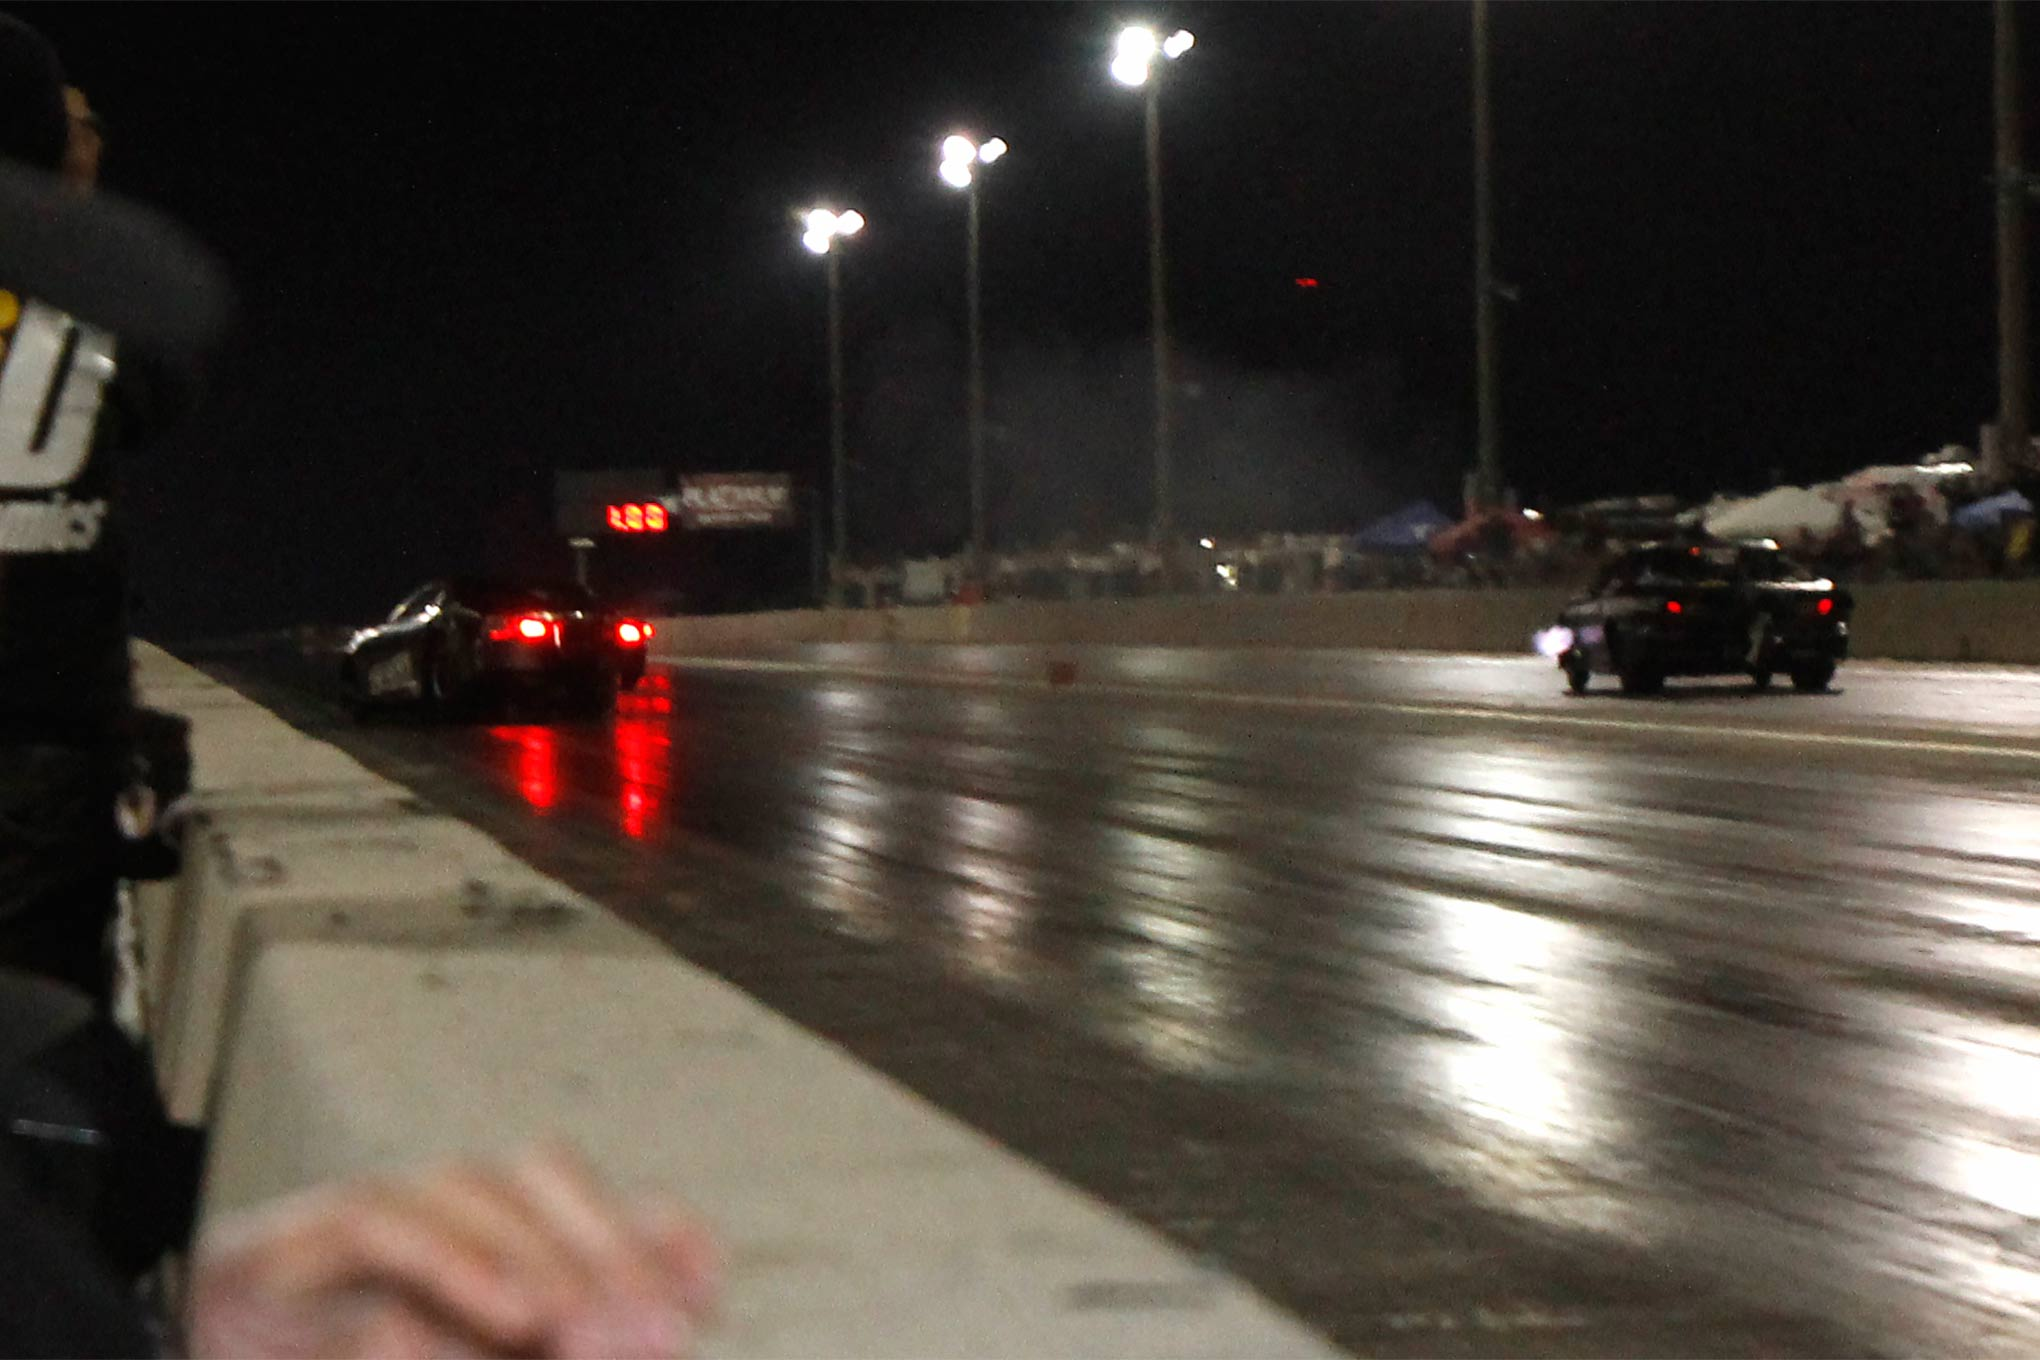 Wednesday's top qualifier Keith Haney had a strong-looking launch, but the car got squirrely and he brushed the wall.